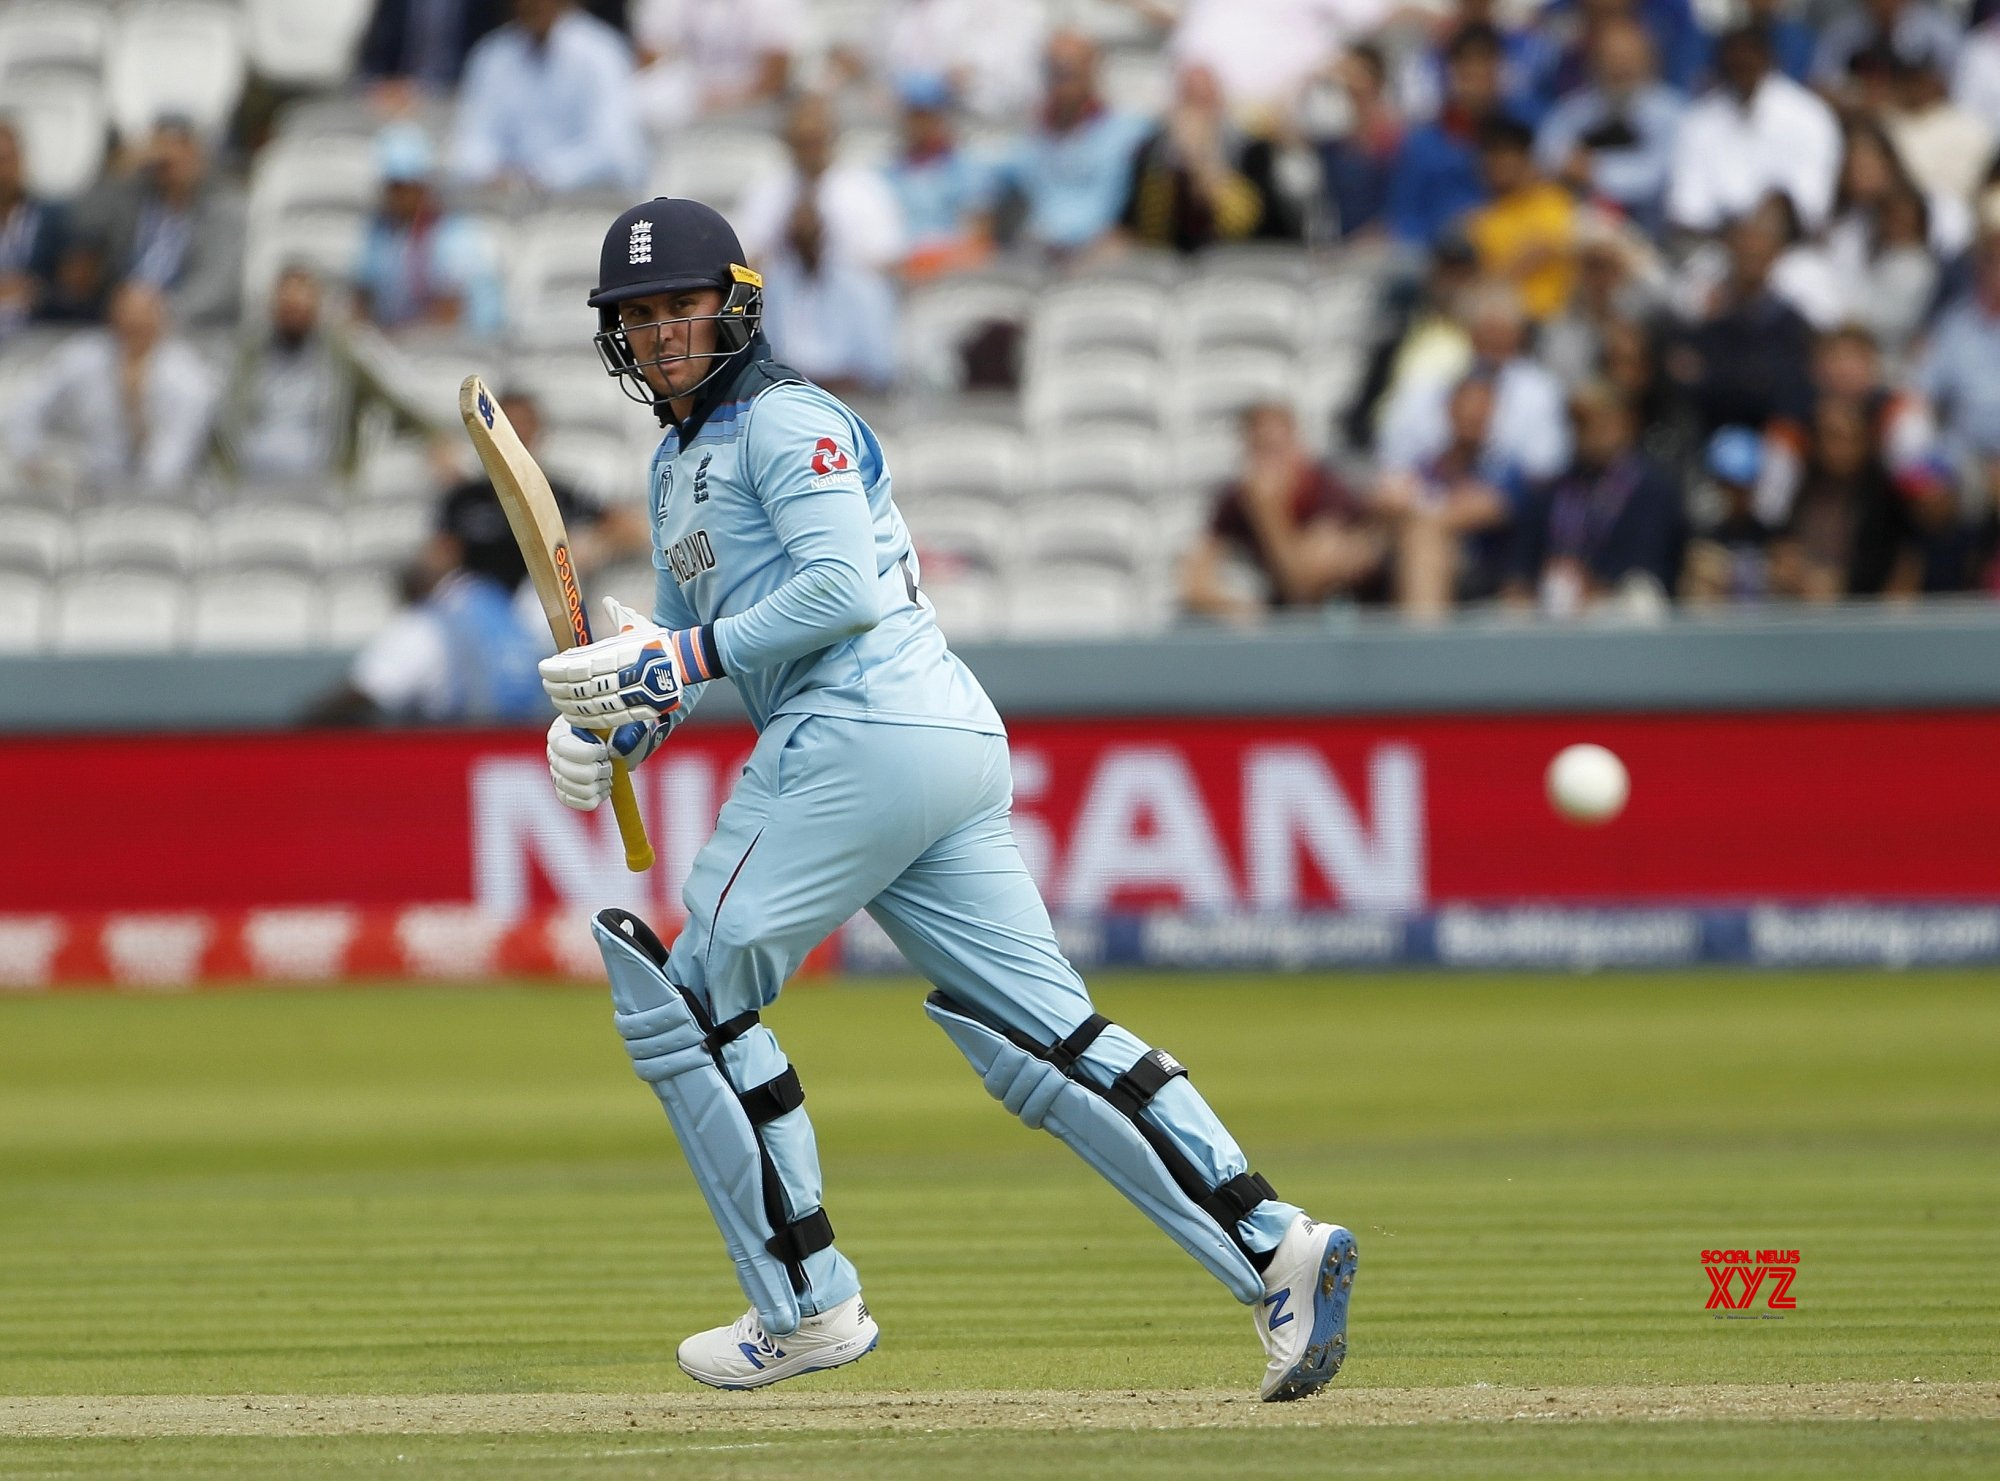 London (England): 2019 World Cup - Final - New Zealand Vs England (Batch - 31) #Gallery